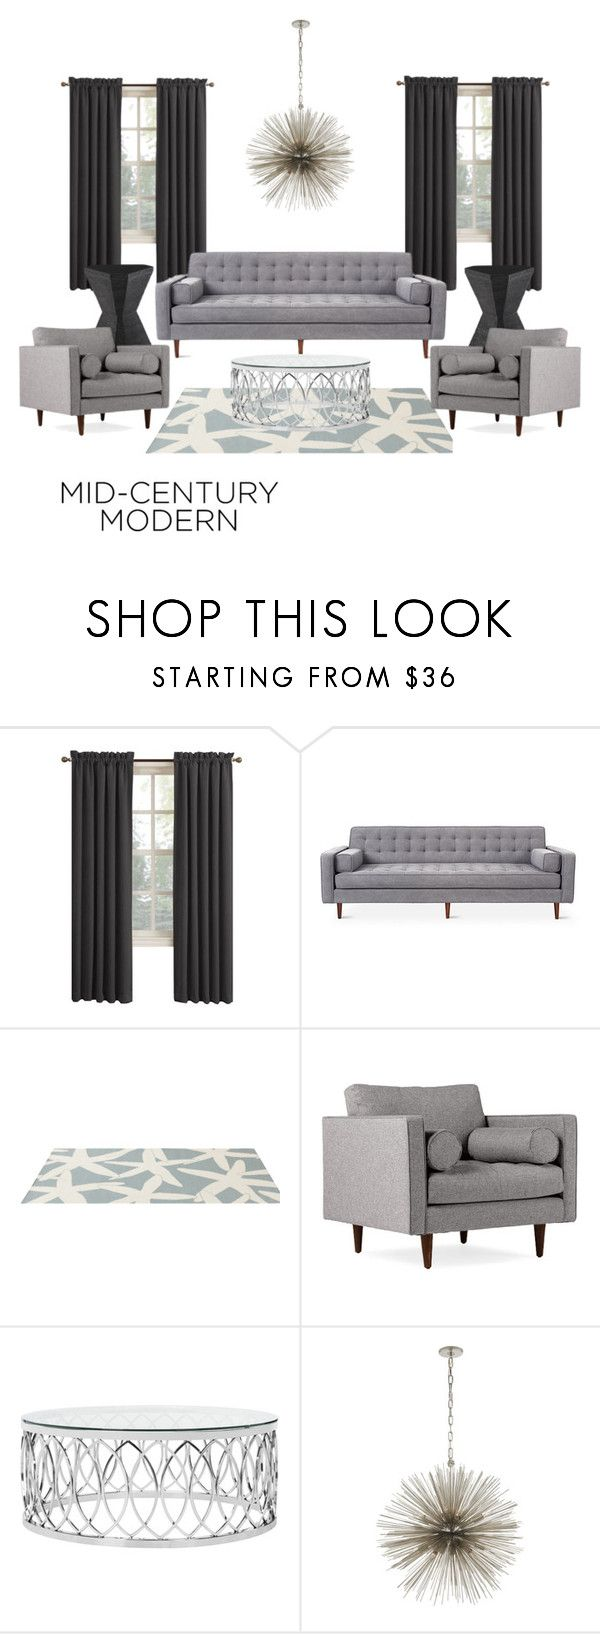 """Dimensional home"" by oliviagrace14 ❤ liked on Polyvore featuring interior, interiors, interior design, home, home decor, interior decorating, Sun Zero, Somerset Bay, Joybird and Safavieh"